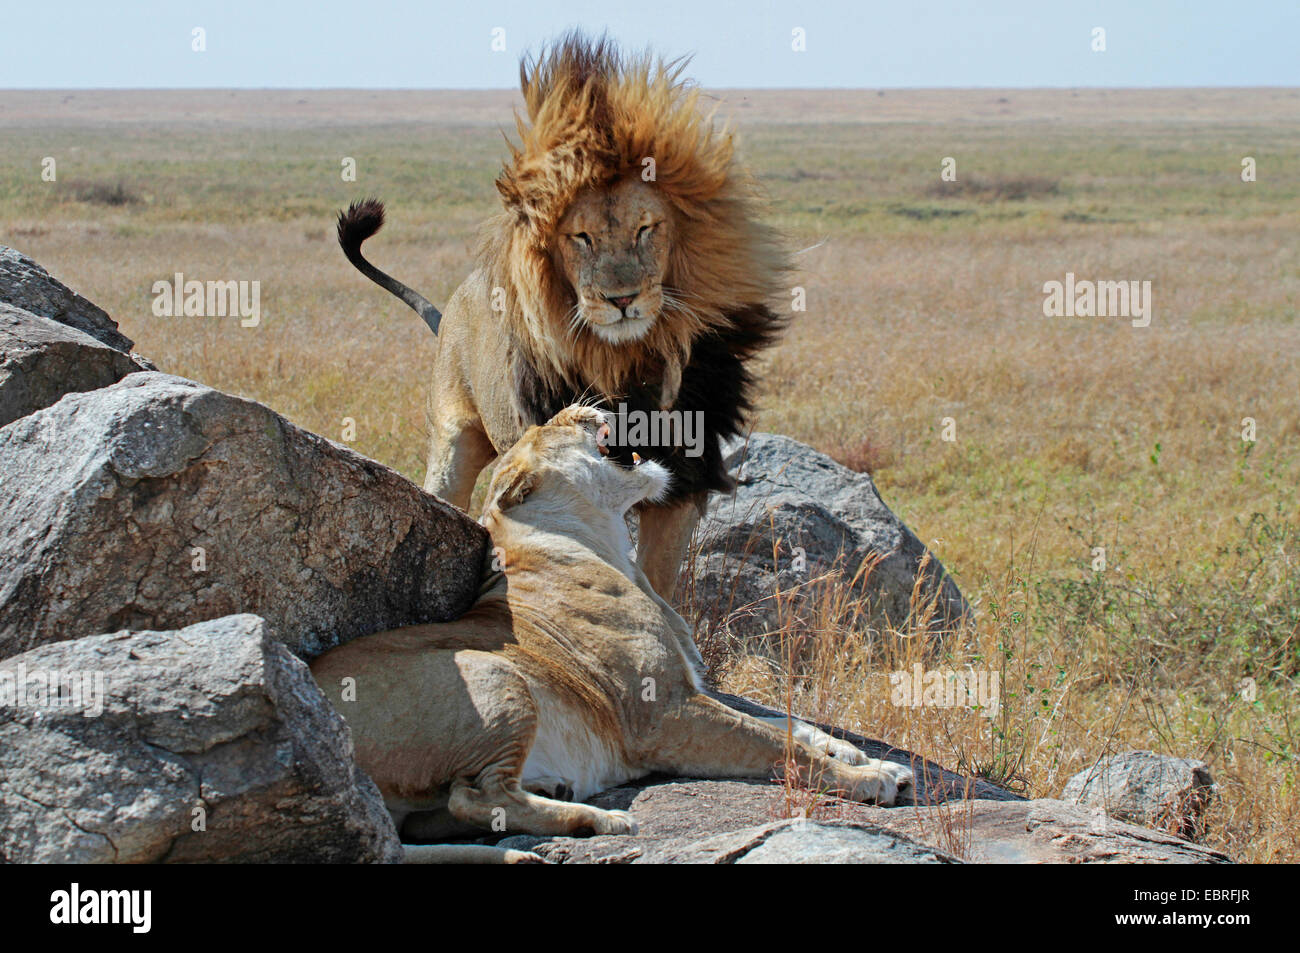 lion (Panthera leo), lion couple on rocks in the savannah, Tanzania, Serengeti National Park Stock Photo